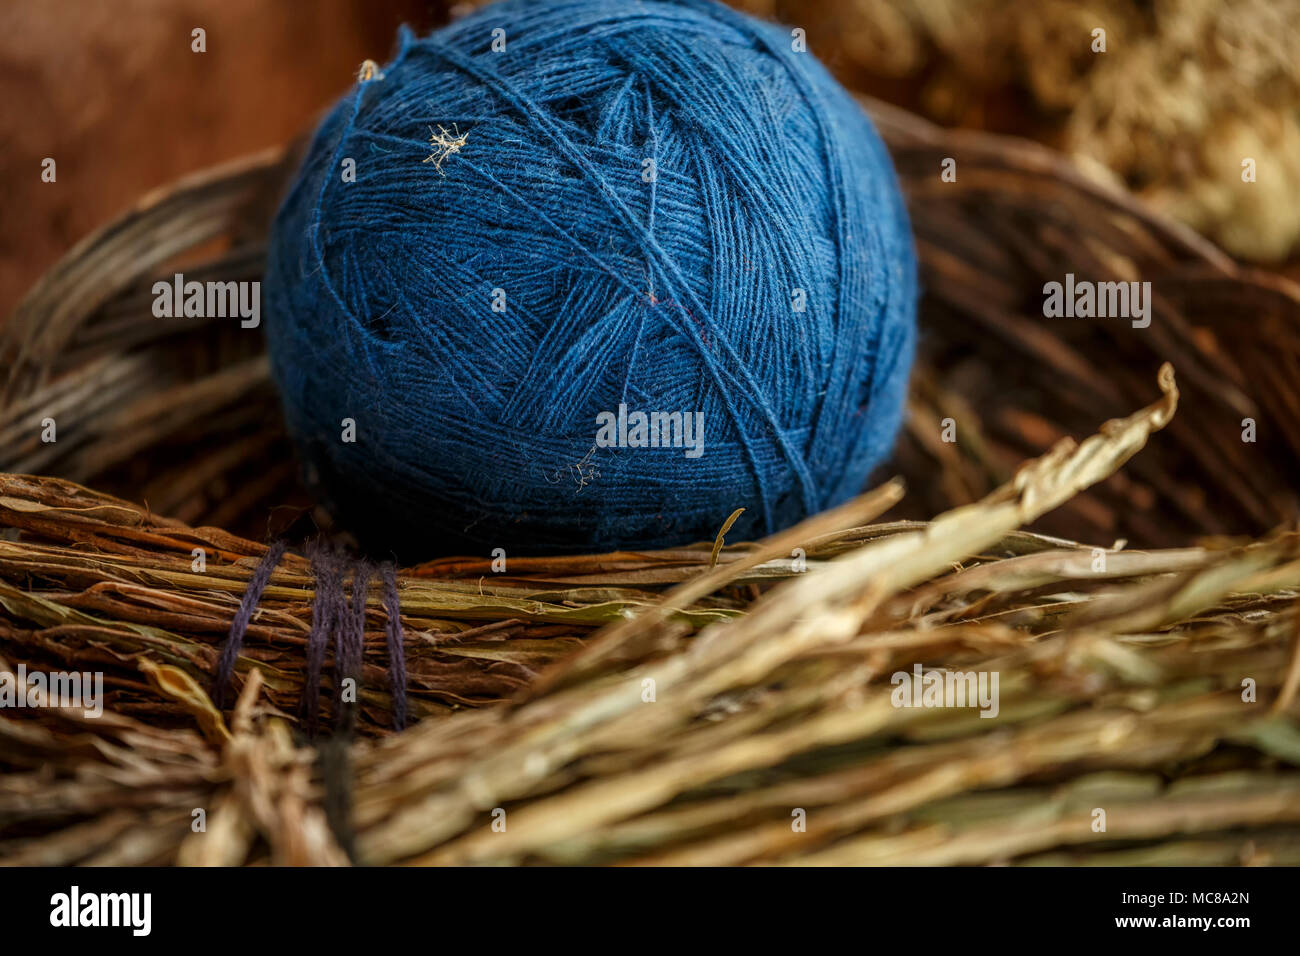 Blue ball of wool and ingredients used to create color, El Balcon del Inka, Chinchero, Cusco, Peru Stock Photo